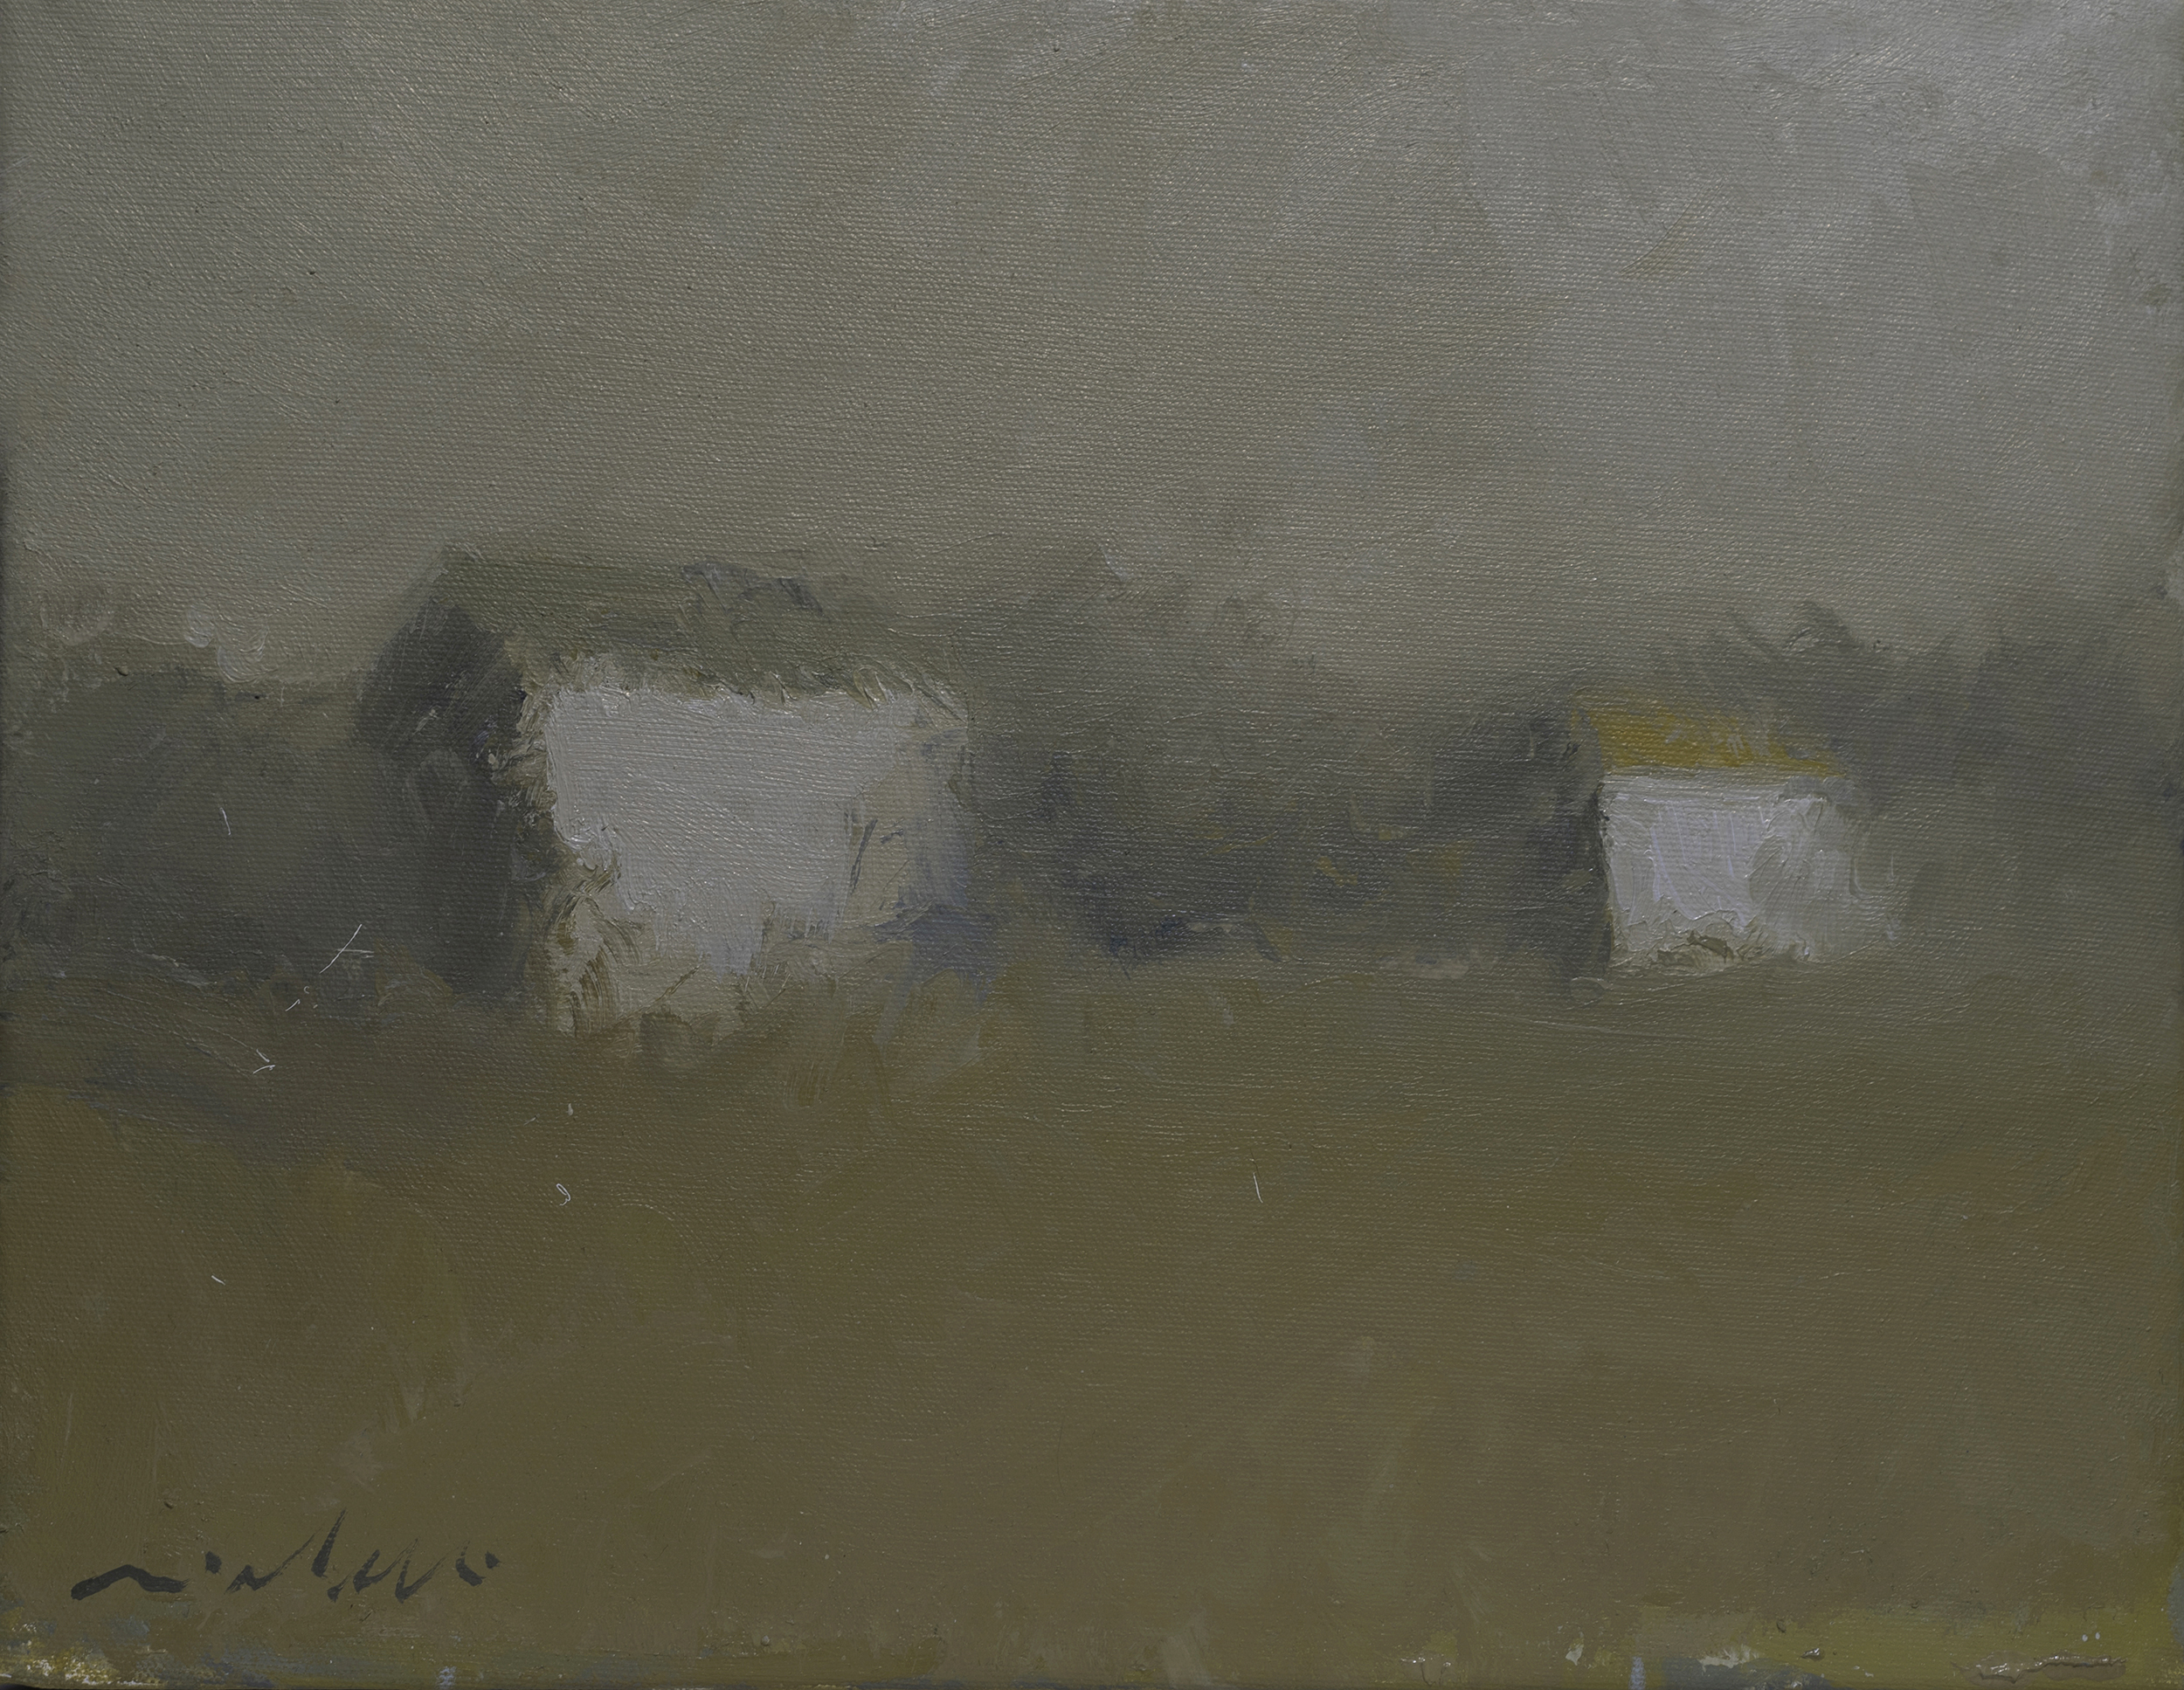 Farm Sheds artwork by Victor Mirabelli - art listed for sale on Artplode